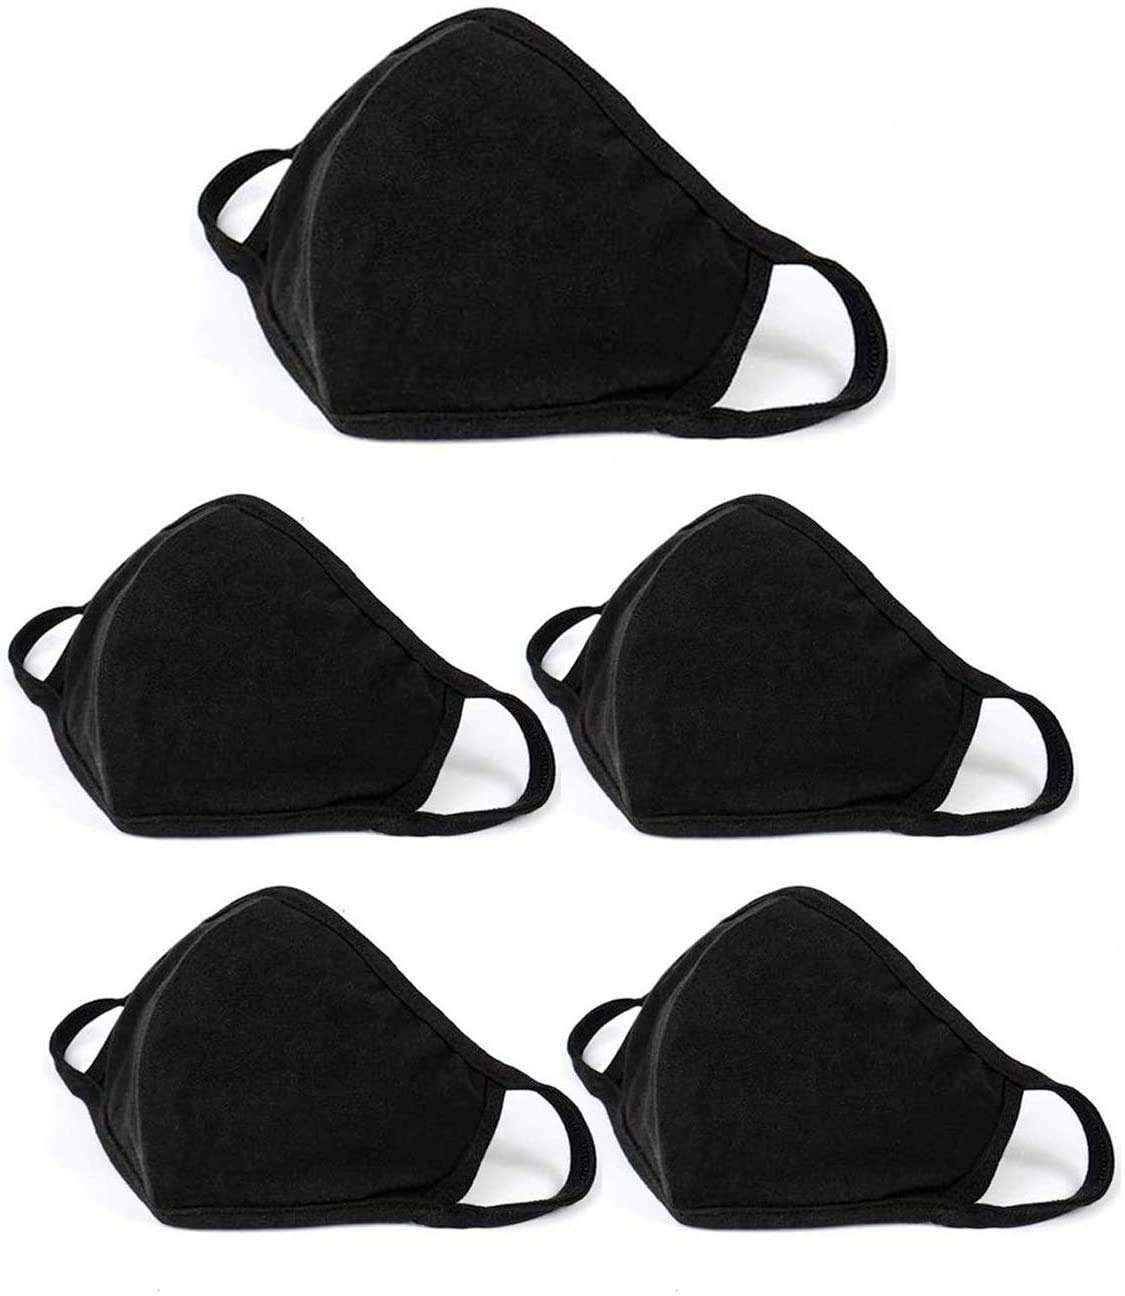 Fashion Washable Men Women Reusable Cotton Cloth Fabric Breathable Unisex Black Dust Face Mask with Custom Logo